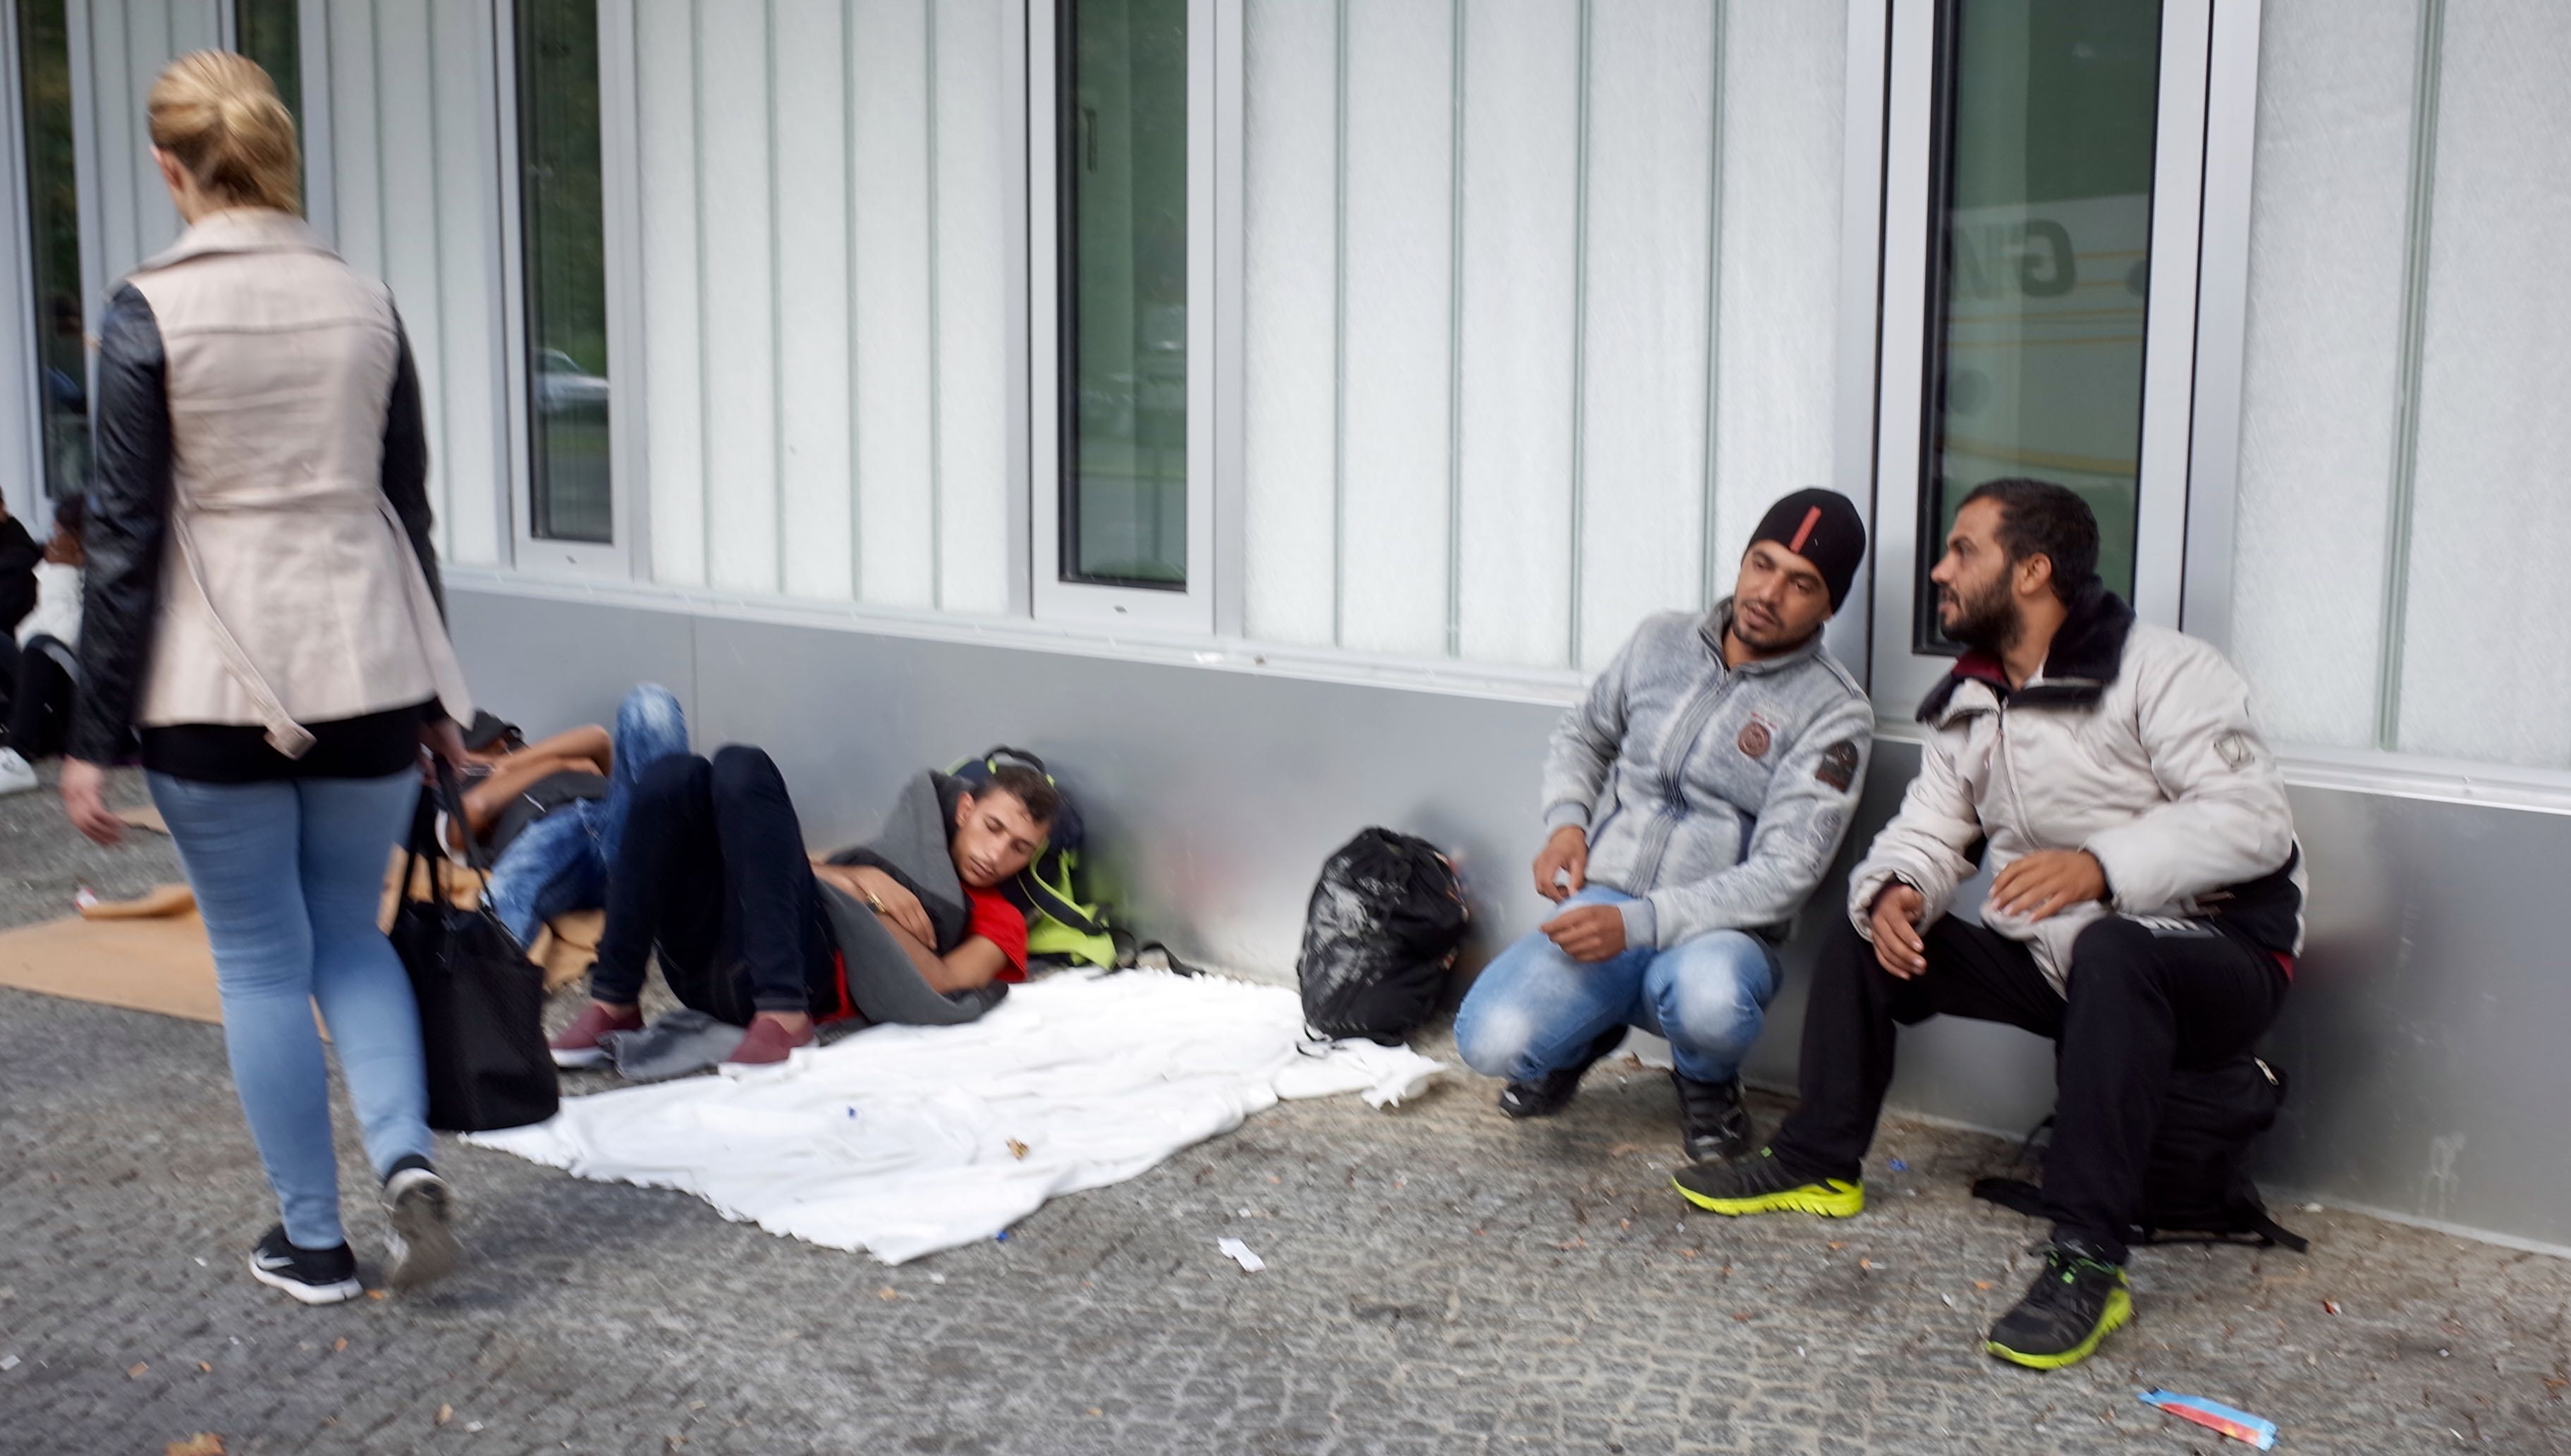 Refugees Sleeping on the Street Waiting to Be Registered in Berlin